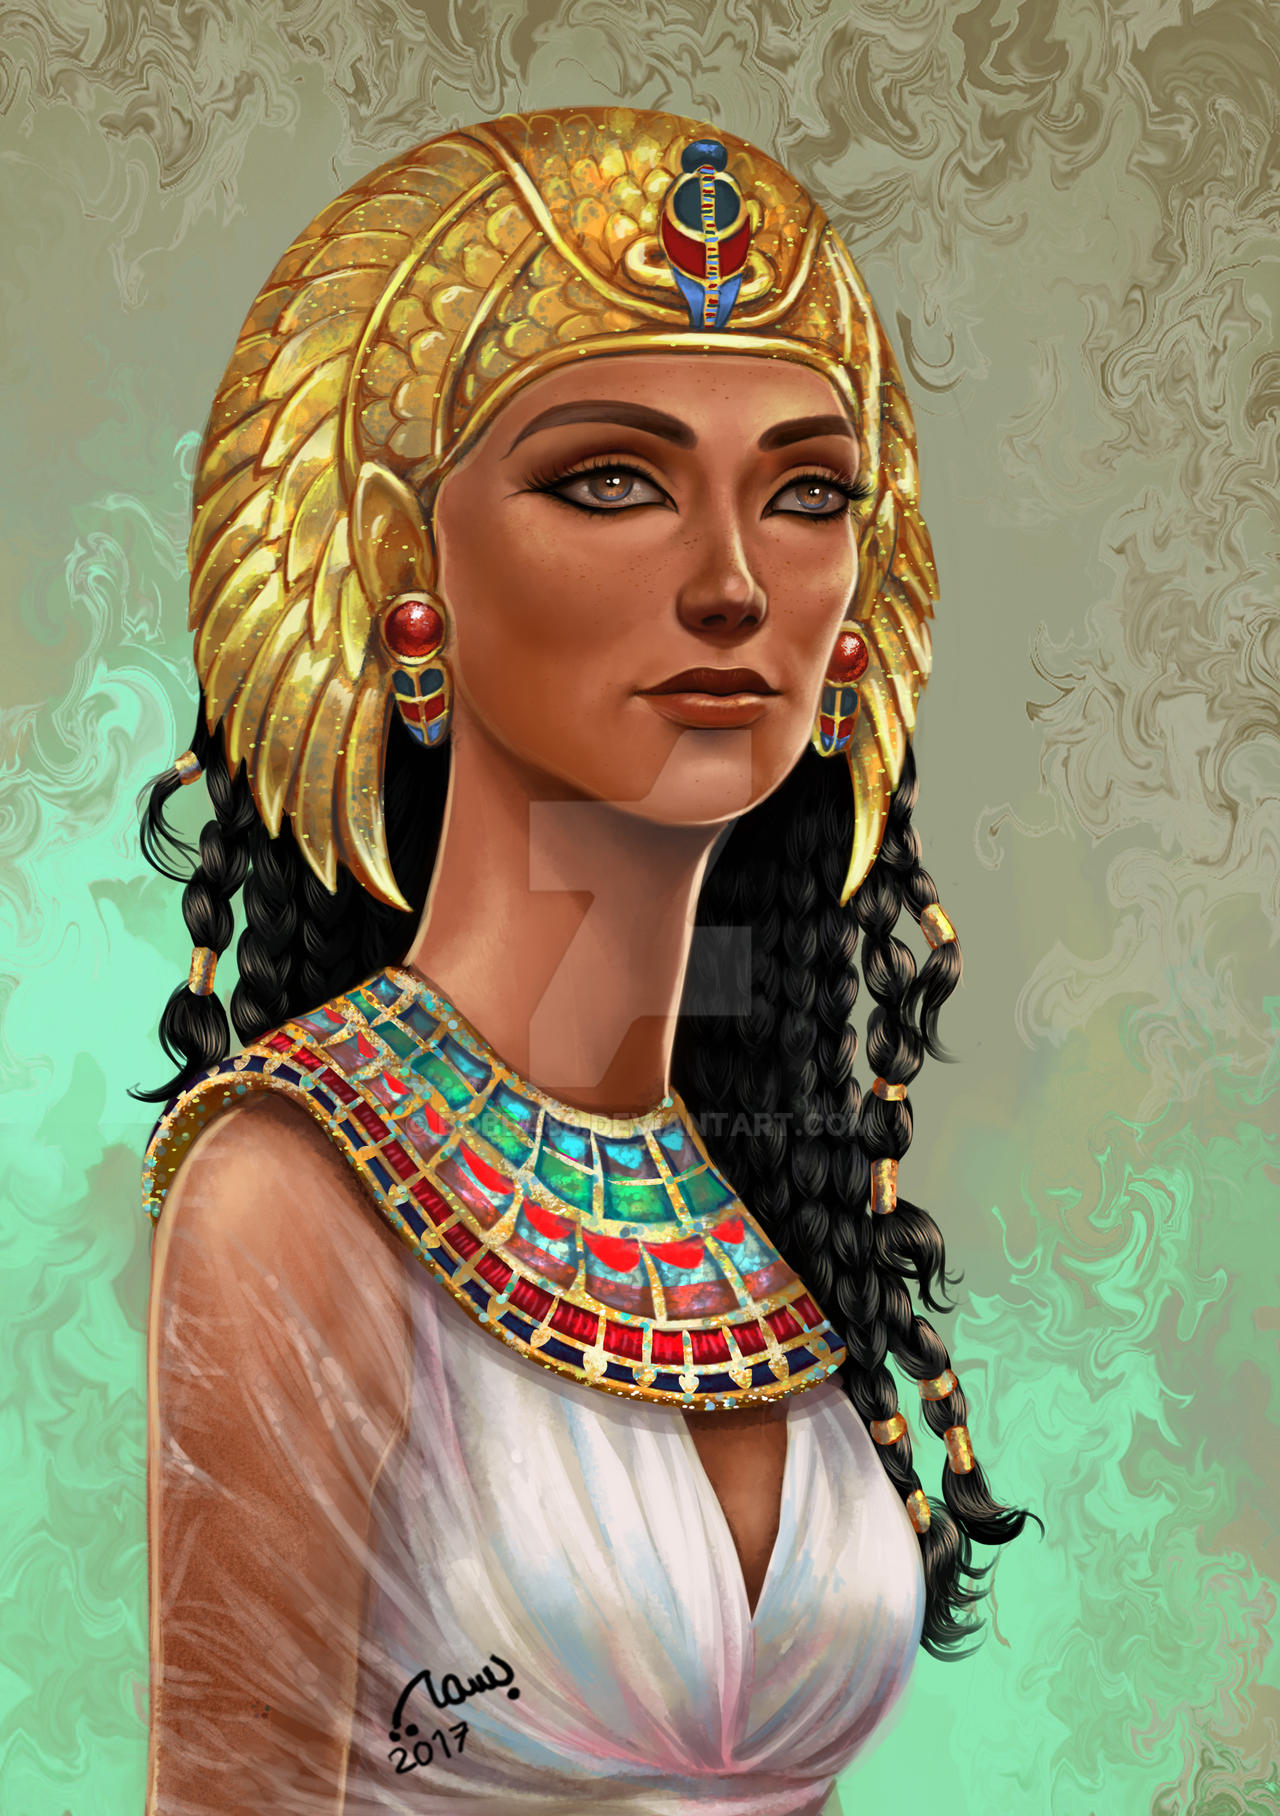 Egyptian queen by bobba88 on DeviantArt